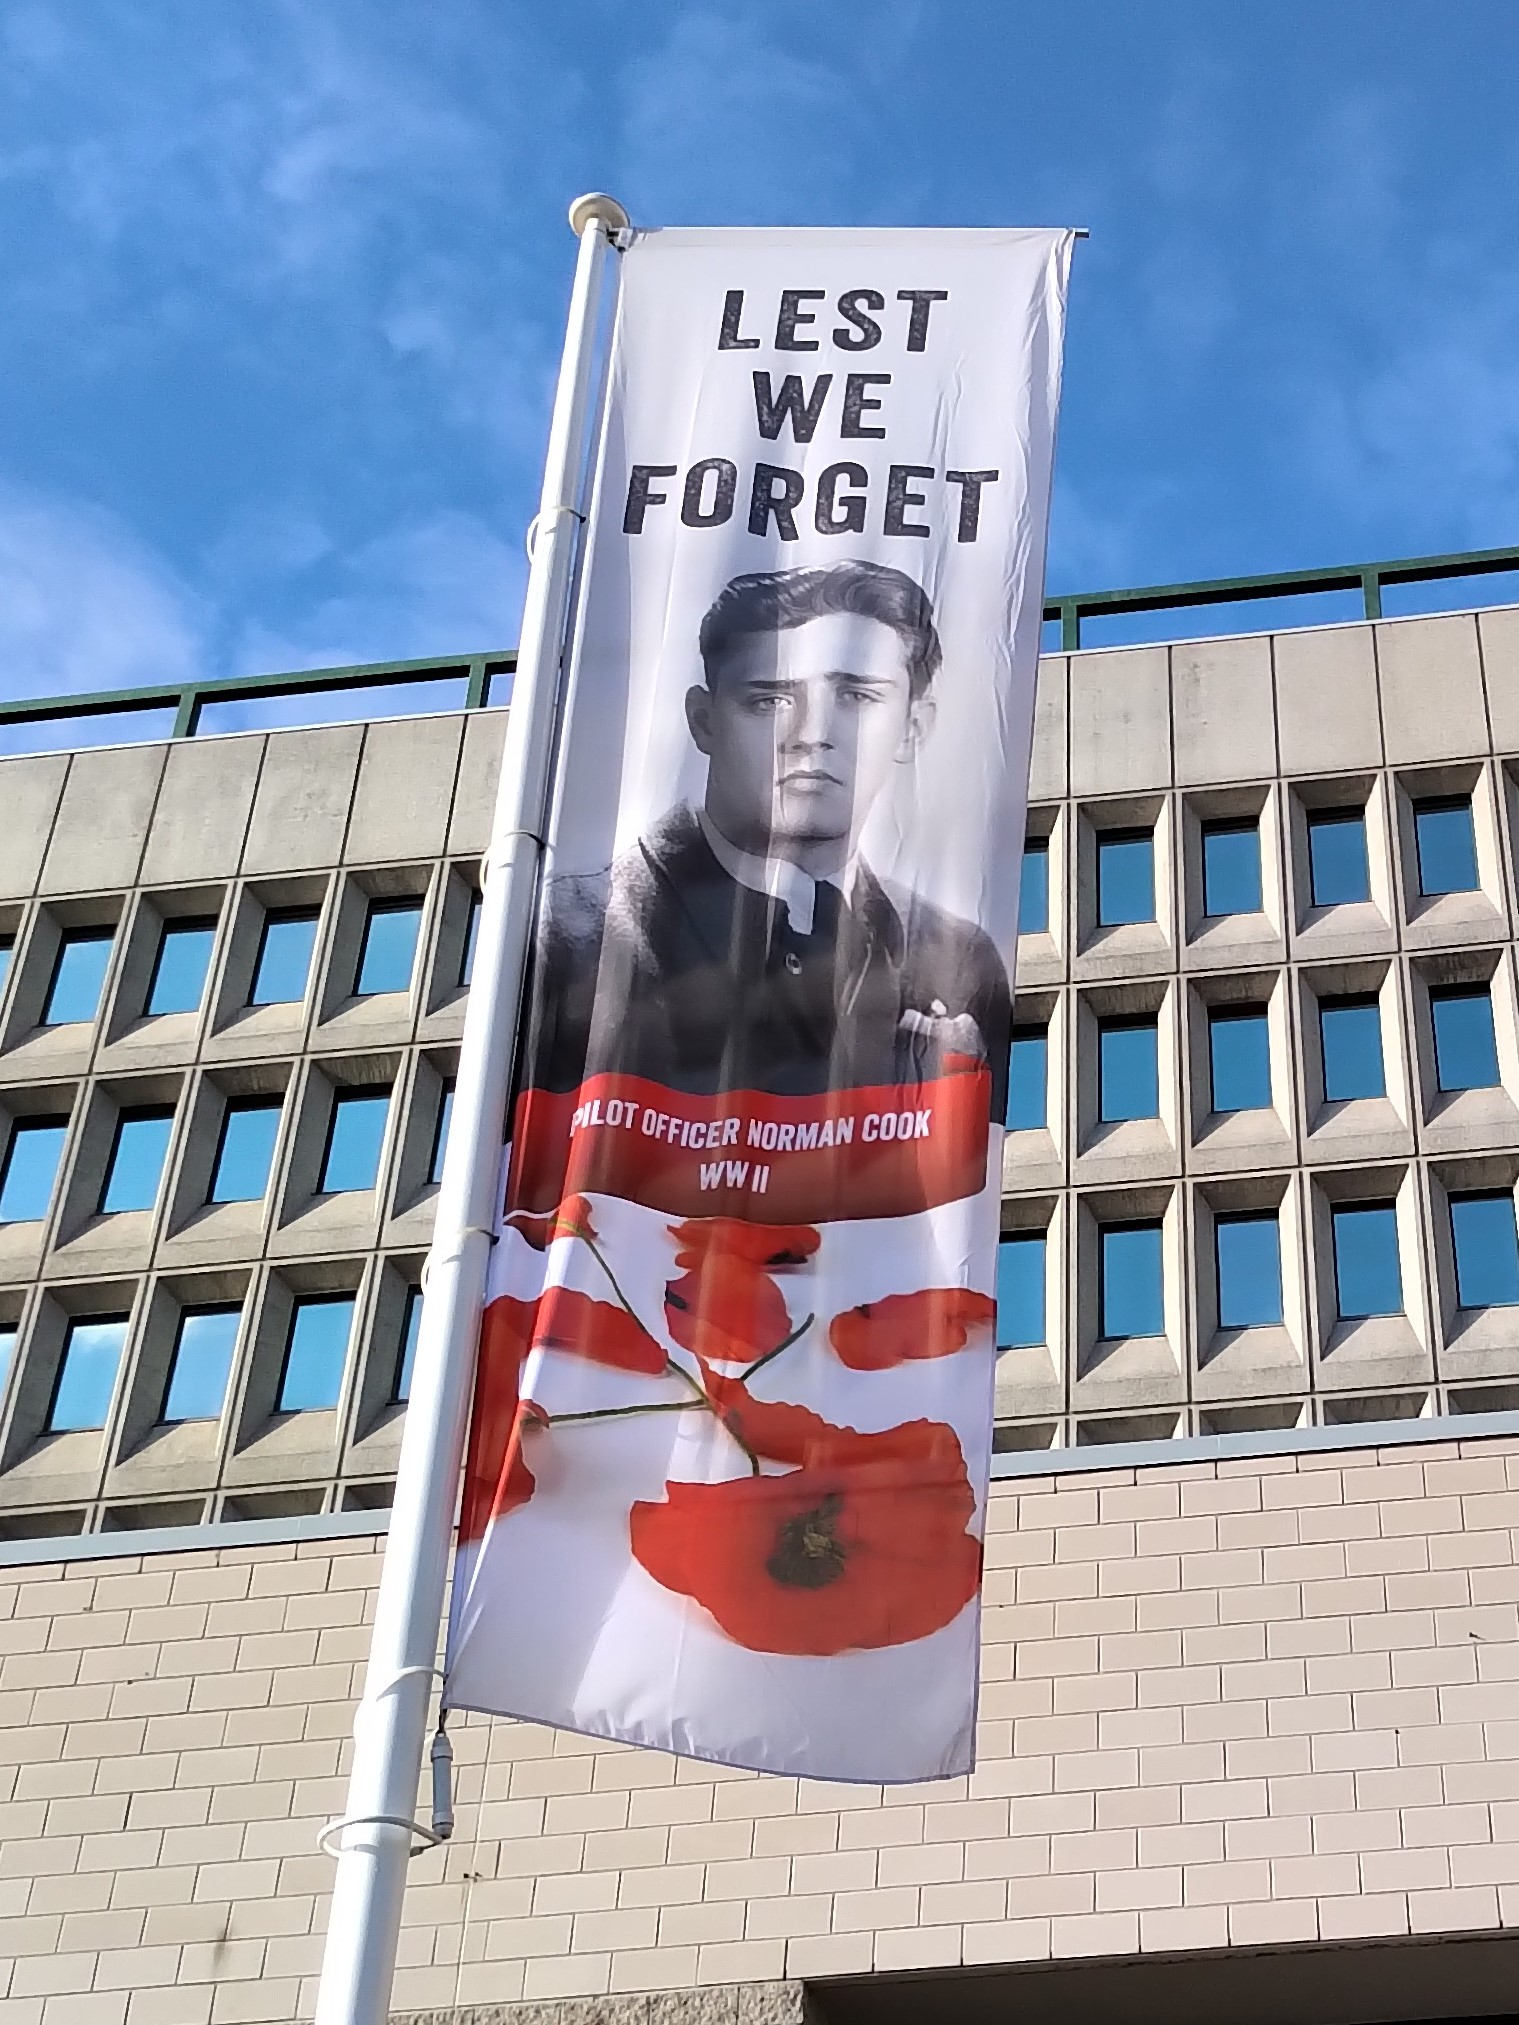 Memorial– Yearly in Barrie, Ontario, in about October and November, banners commemorating local war dead are displayed.  Pictured here is a banner in memory of Pilot Officer Norman Cook.  (Image taken by Gregory J. Barker of Barrie, Ontario, in 2020.)